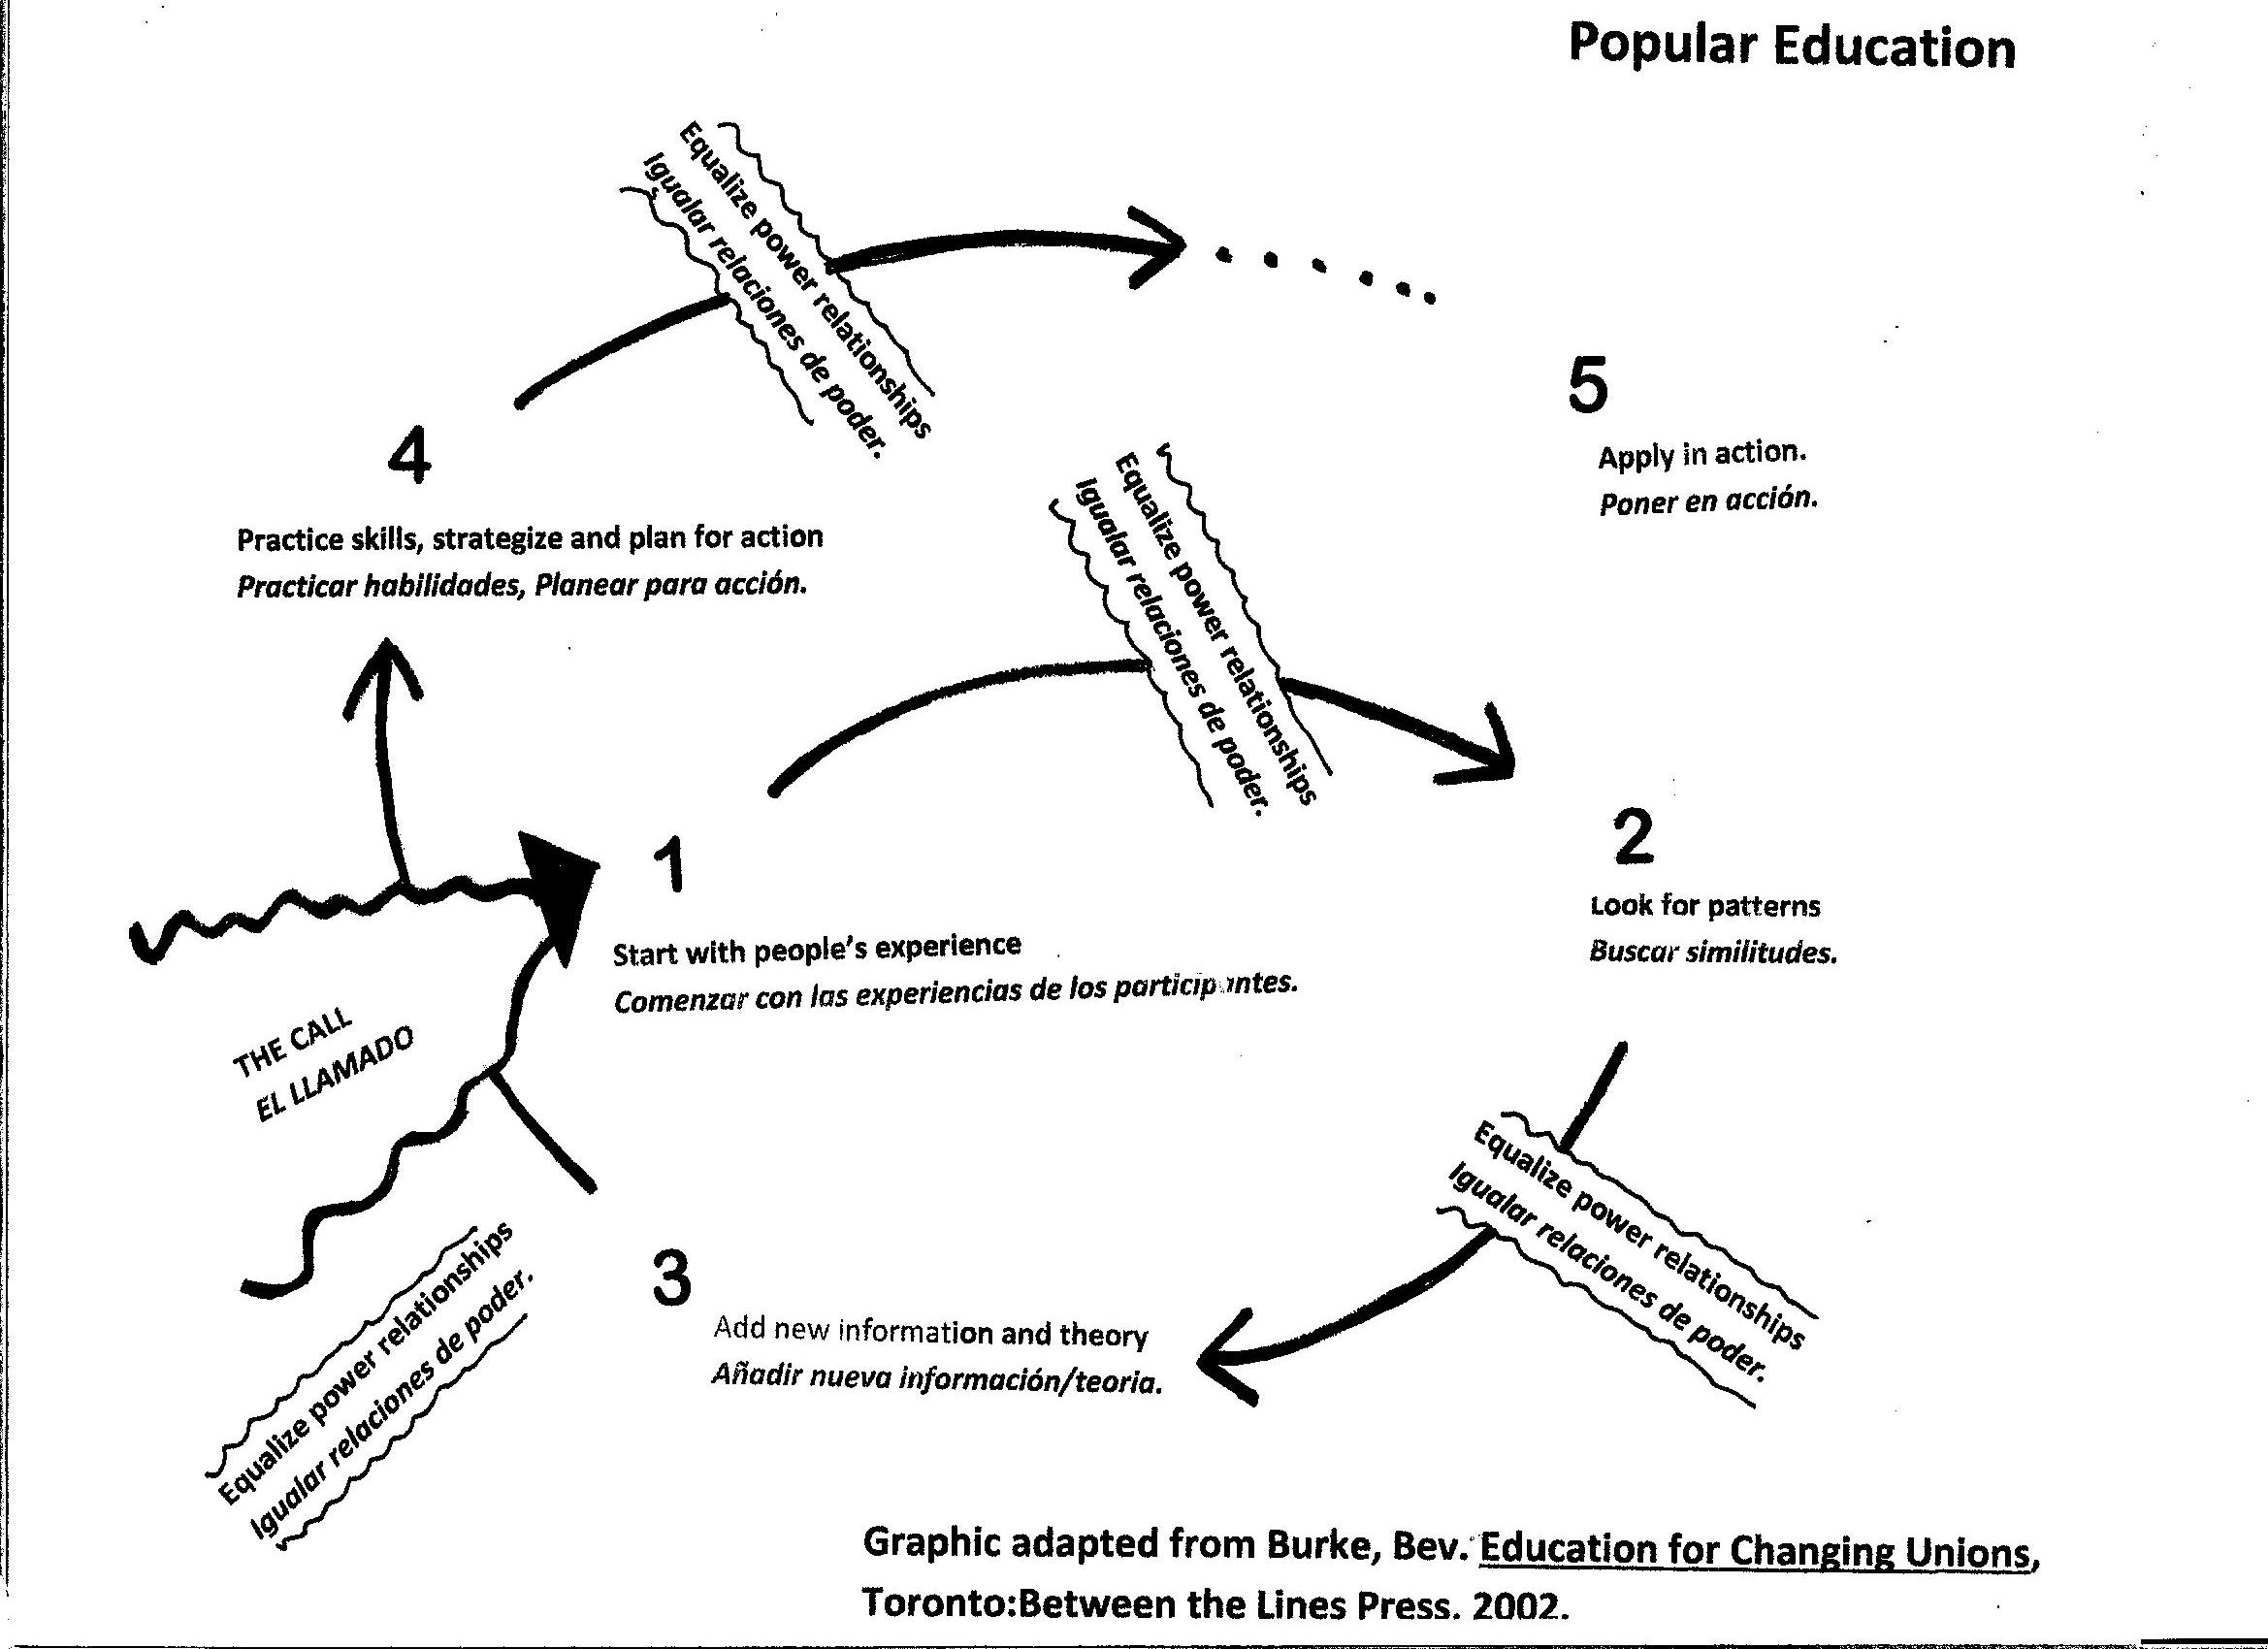 interview organizing to learn learning to organize labor notes the popular education spiral